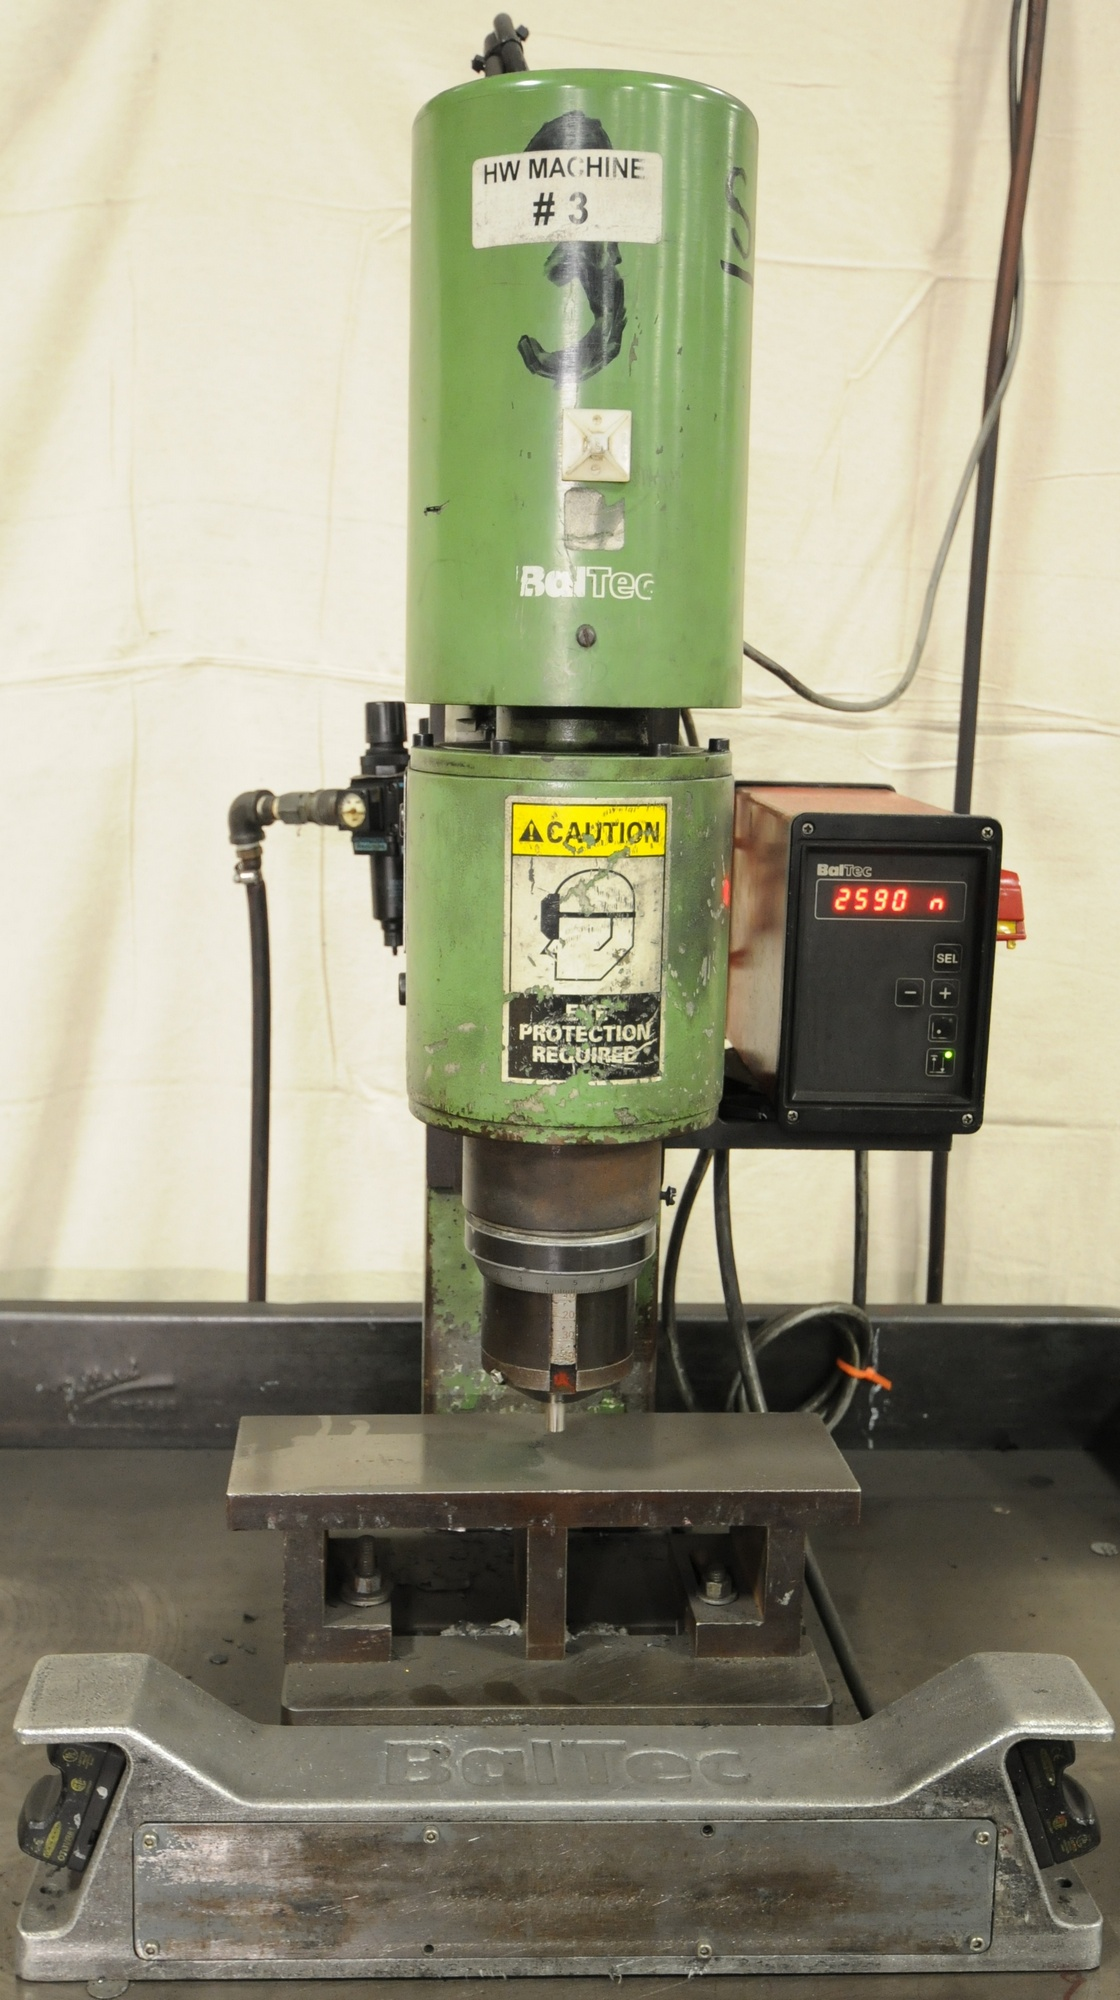 Lot 38 - BALTEC RN231 INSERTION PRESSES WITH BALTEC DIGITAL CONTROLS, 0.5 HP, 1650 RPM, S/N: 231.0153